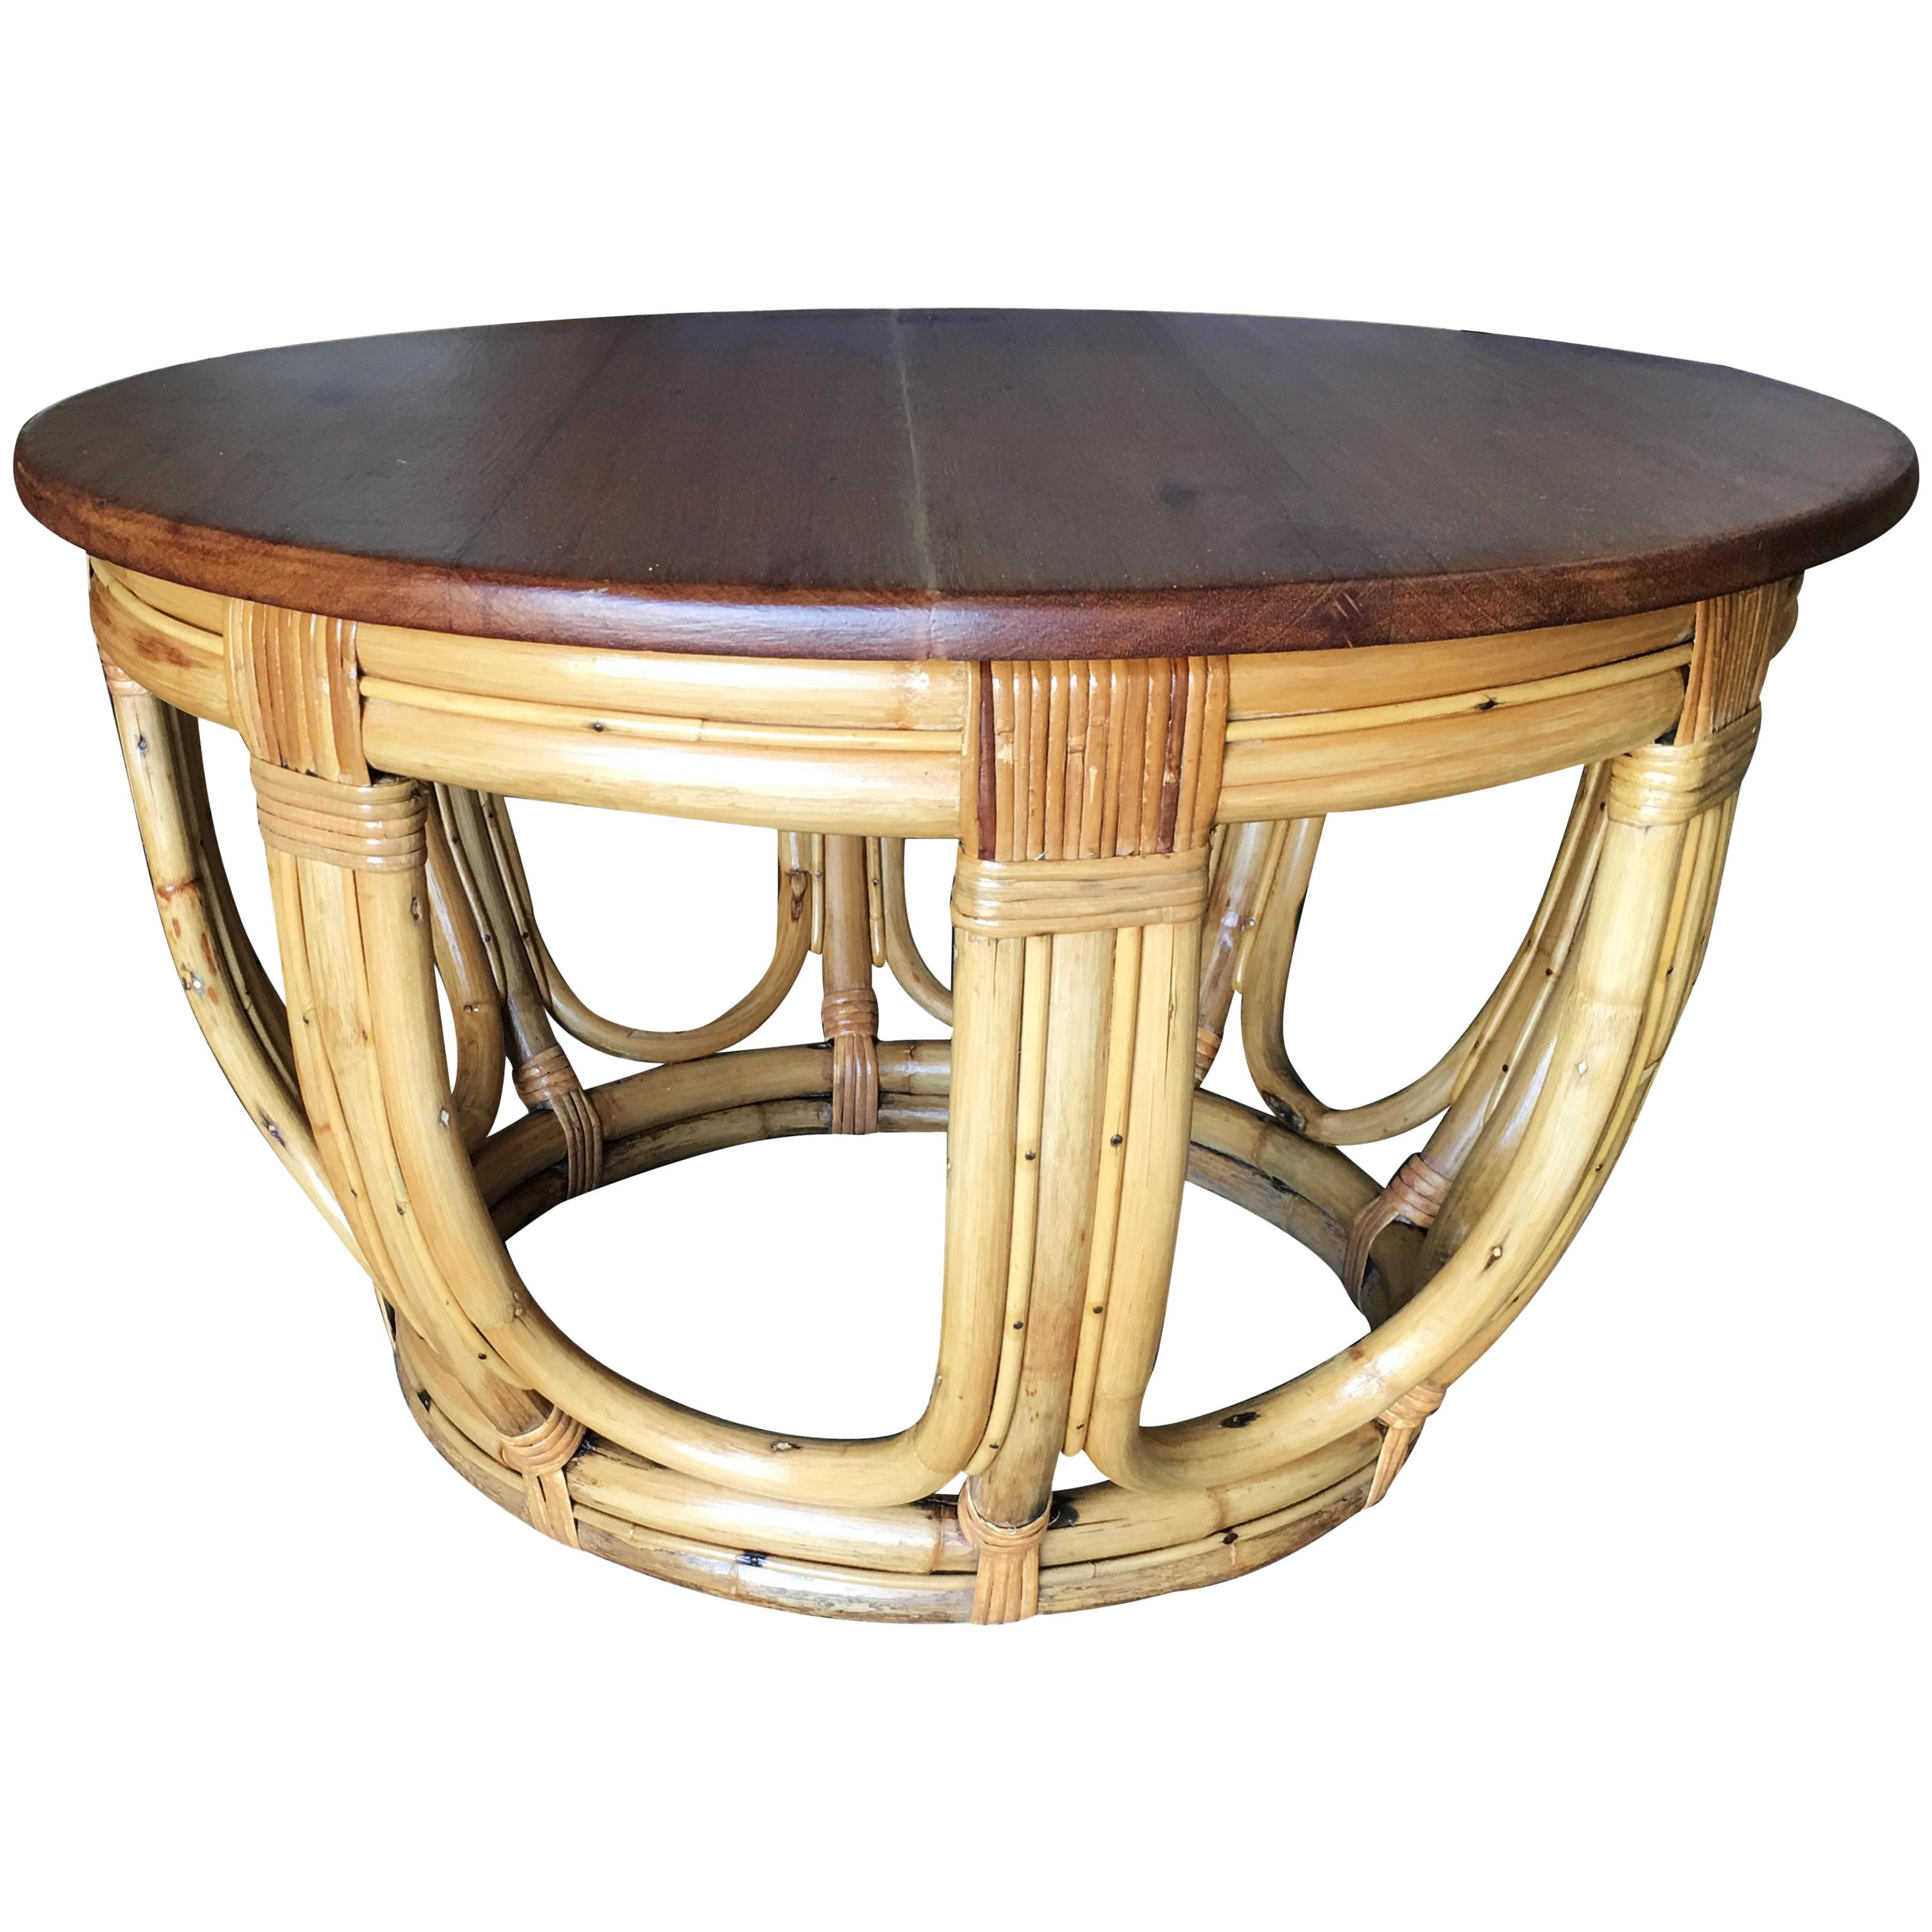 Rattan Table Restored Round Rust Rattan Coffee Table With Mahogany Top And Fancy Wrappings